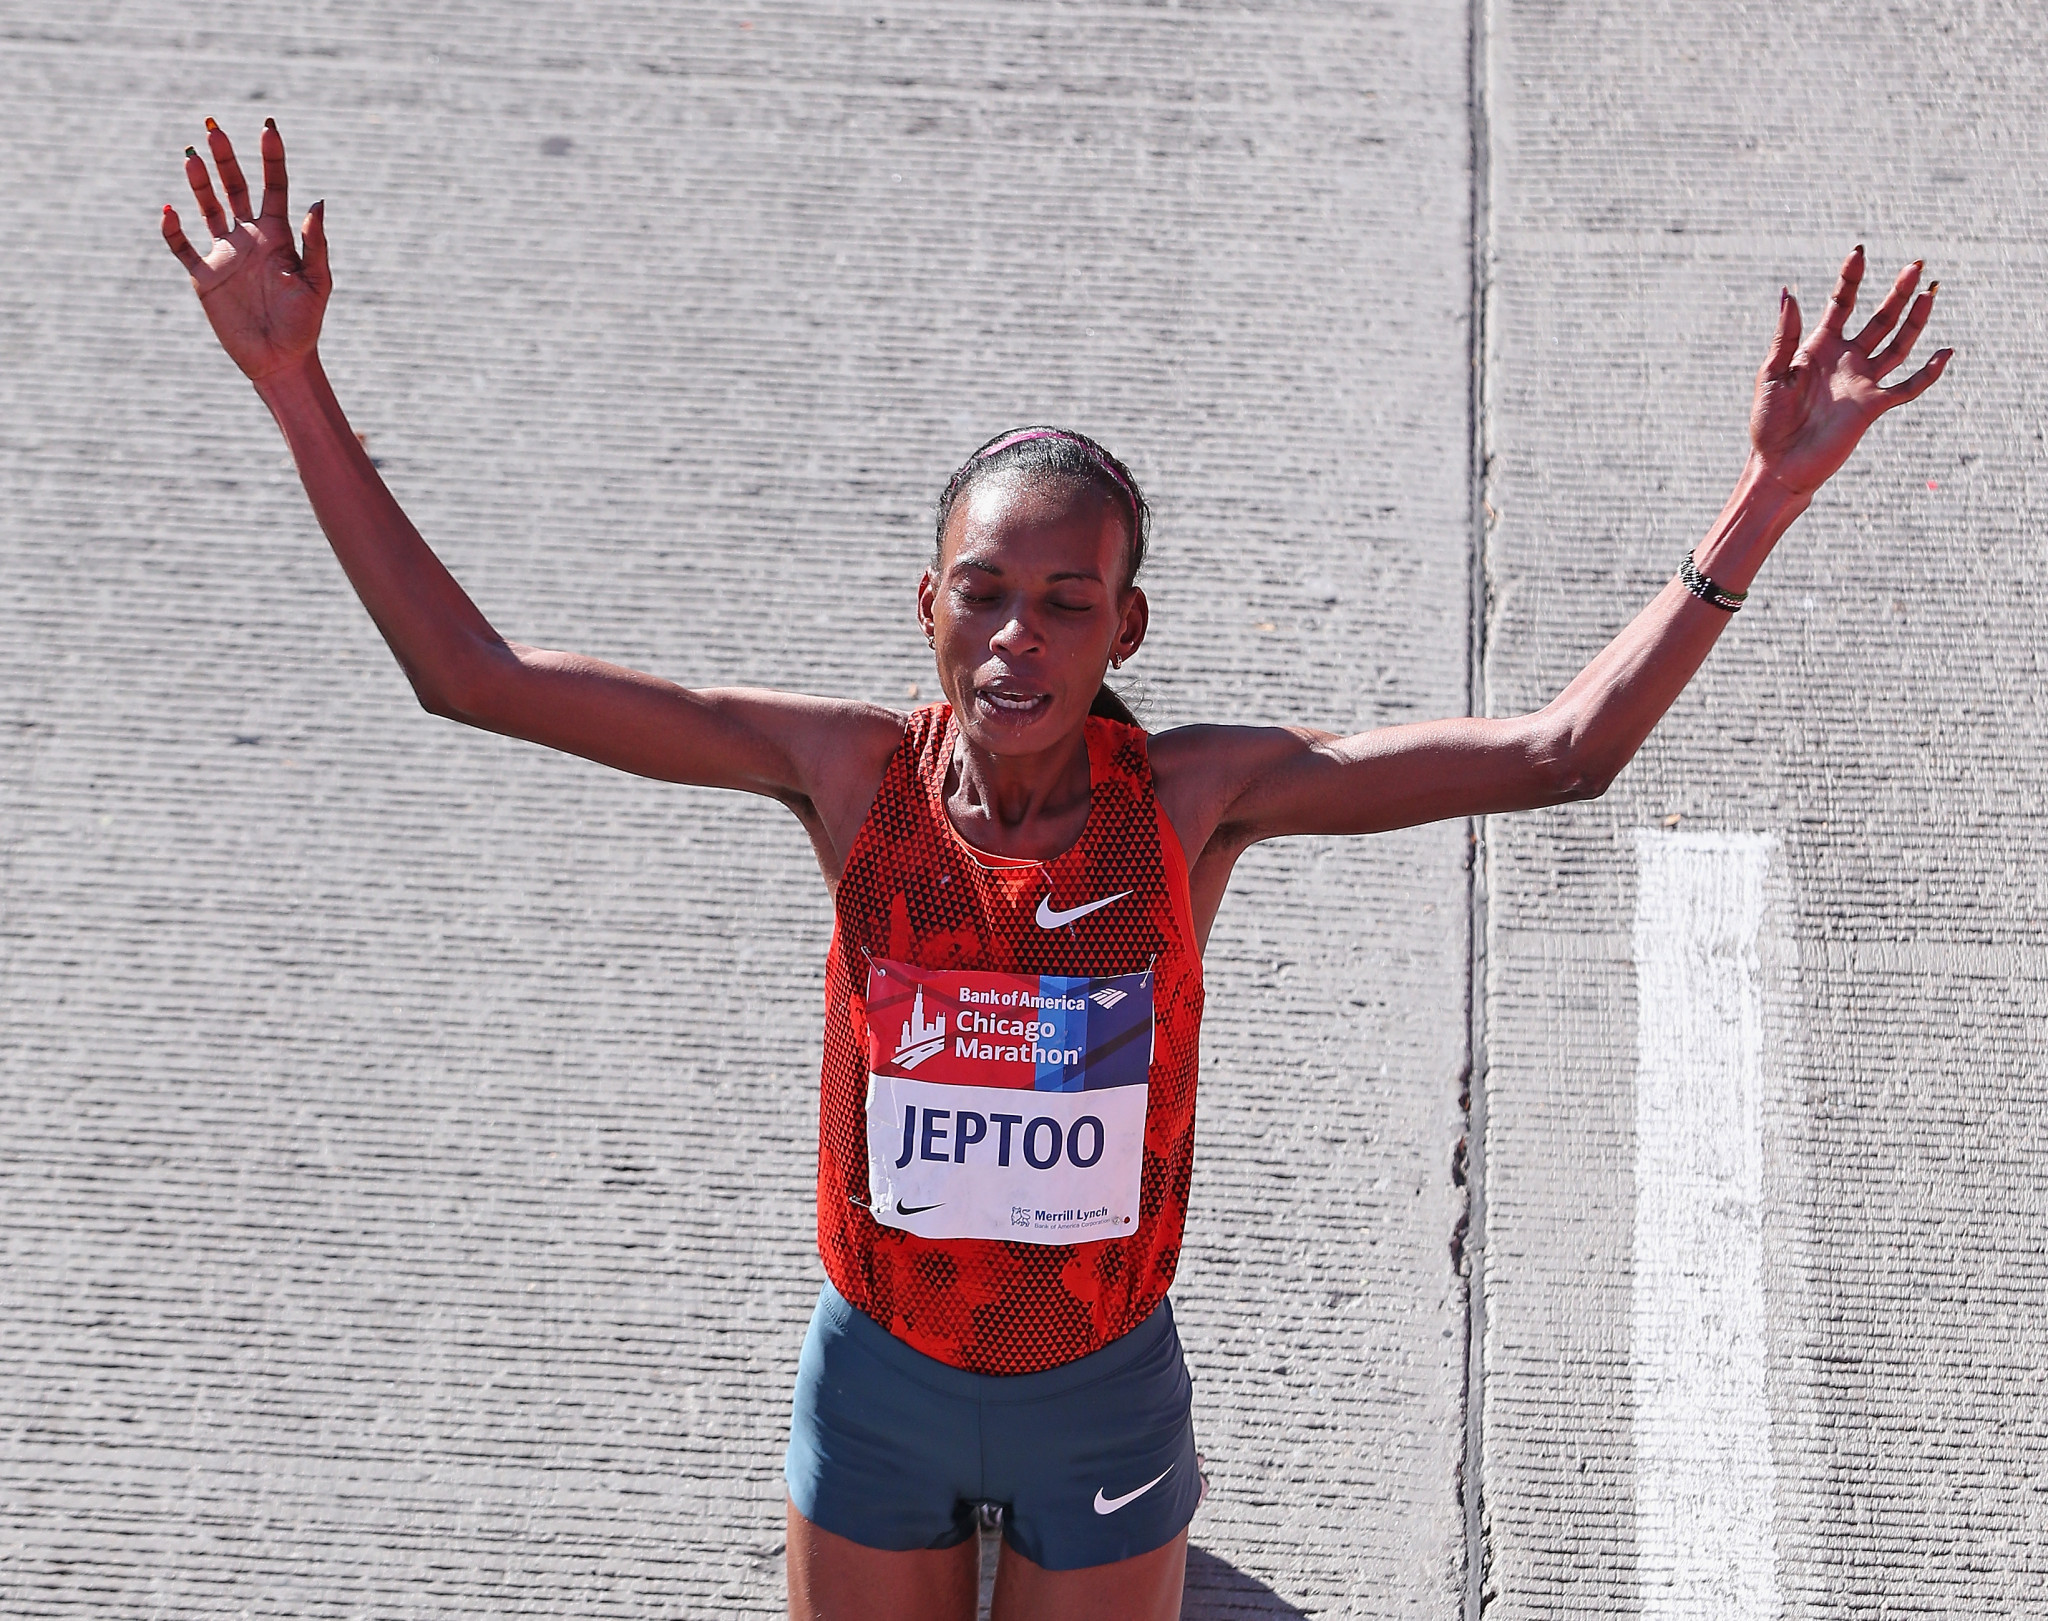 Rita Jeptoo was among the former winners to have been sanctioned for a doping offence ©Getty Images